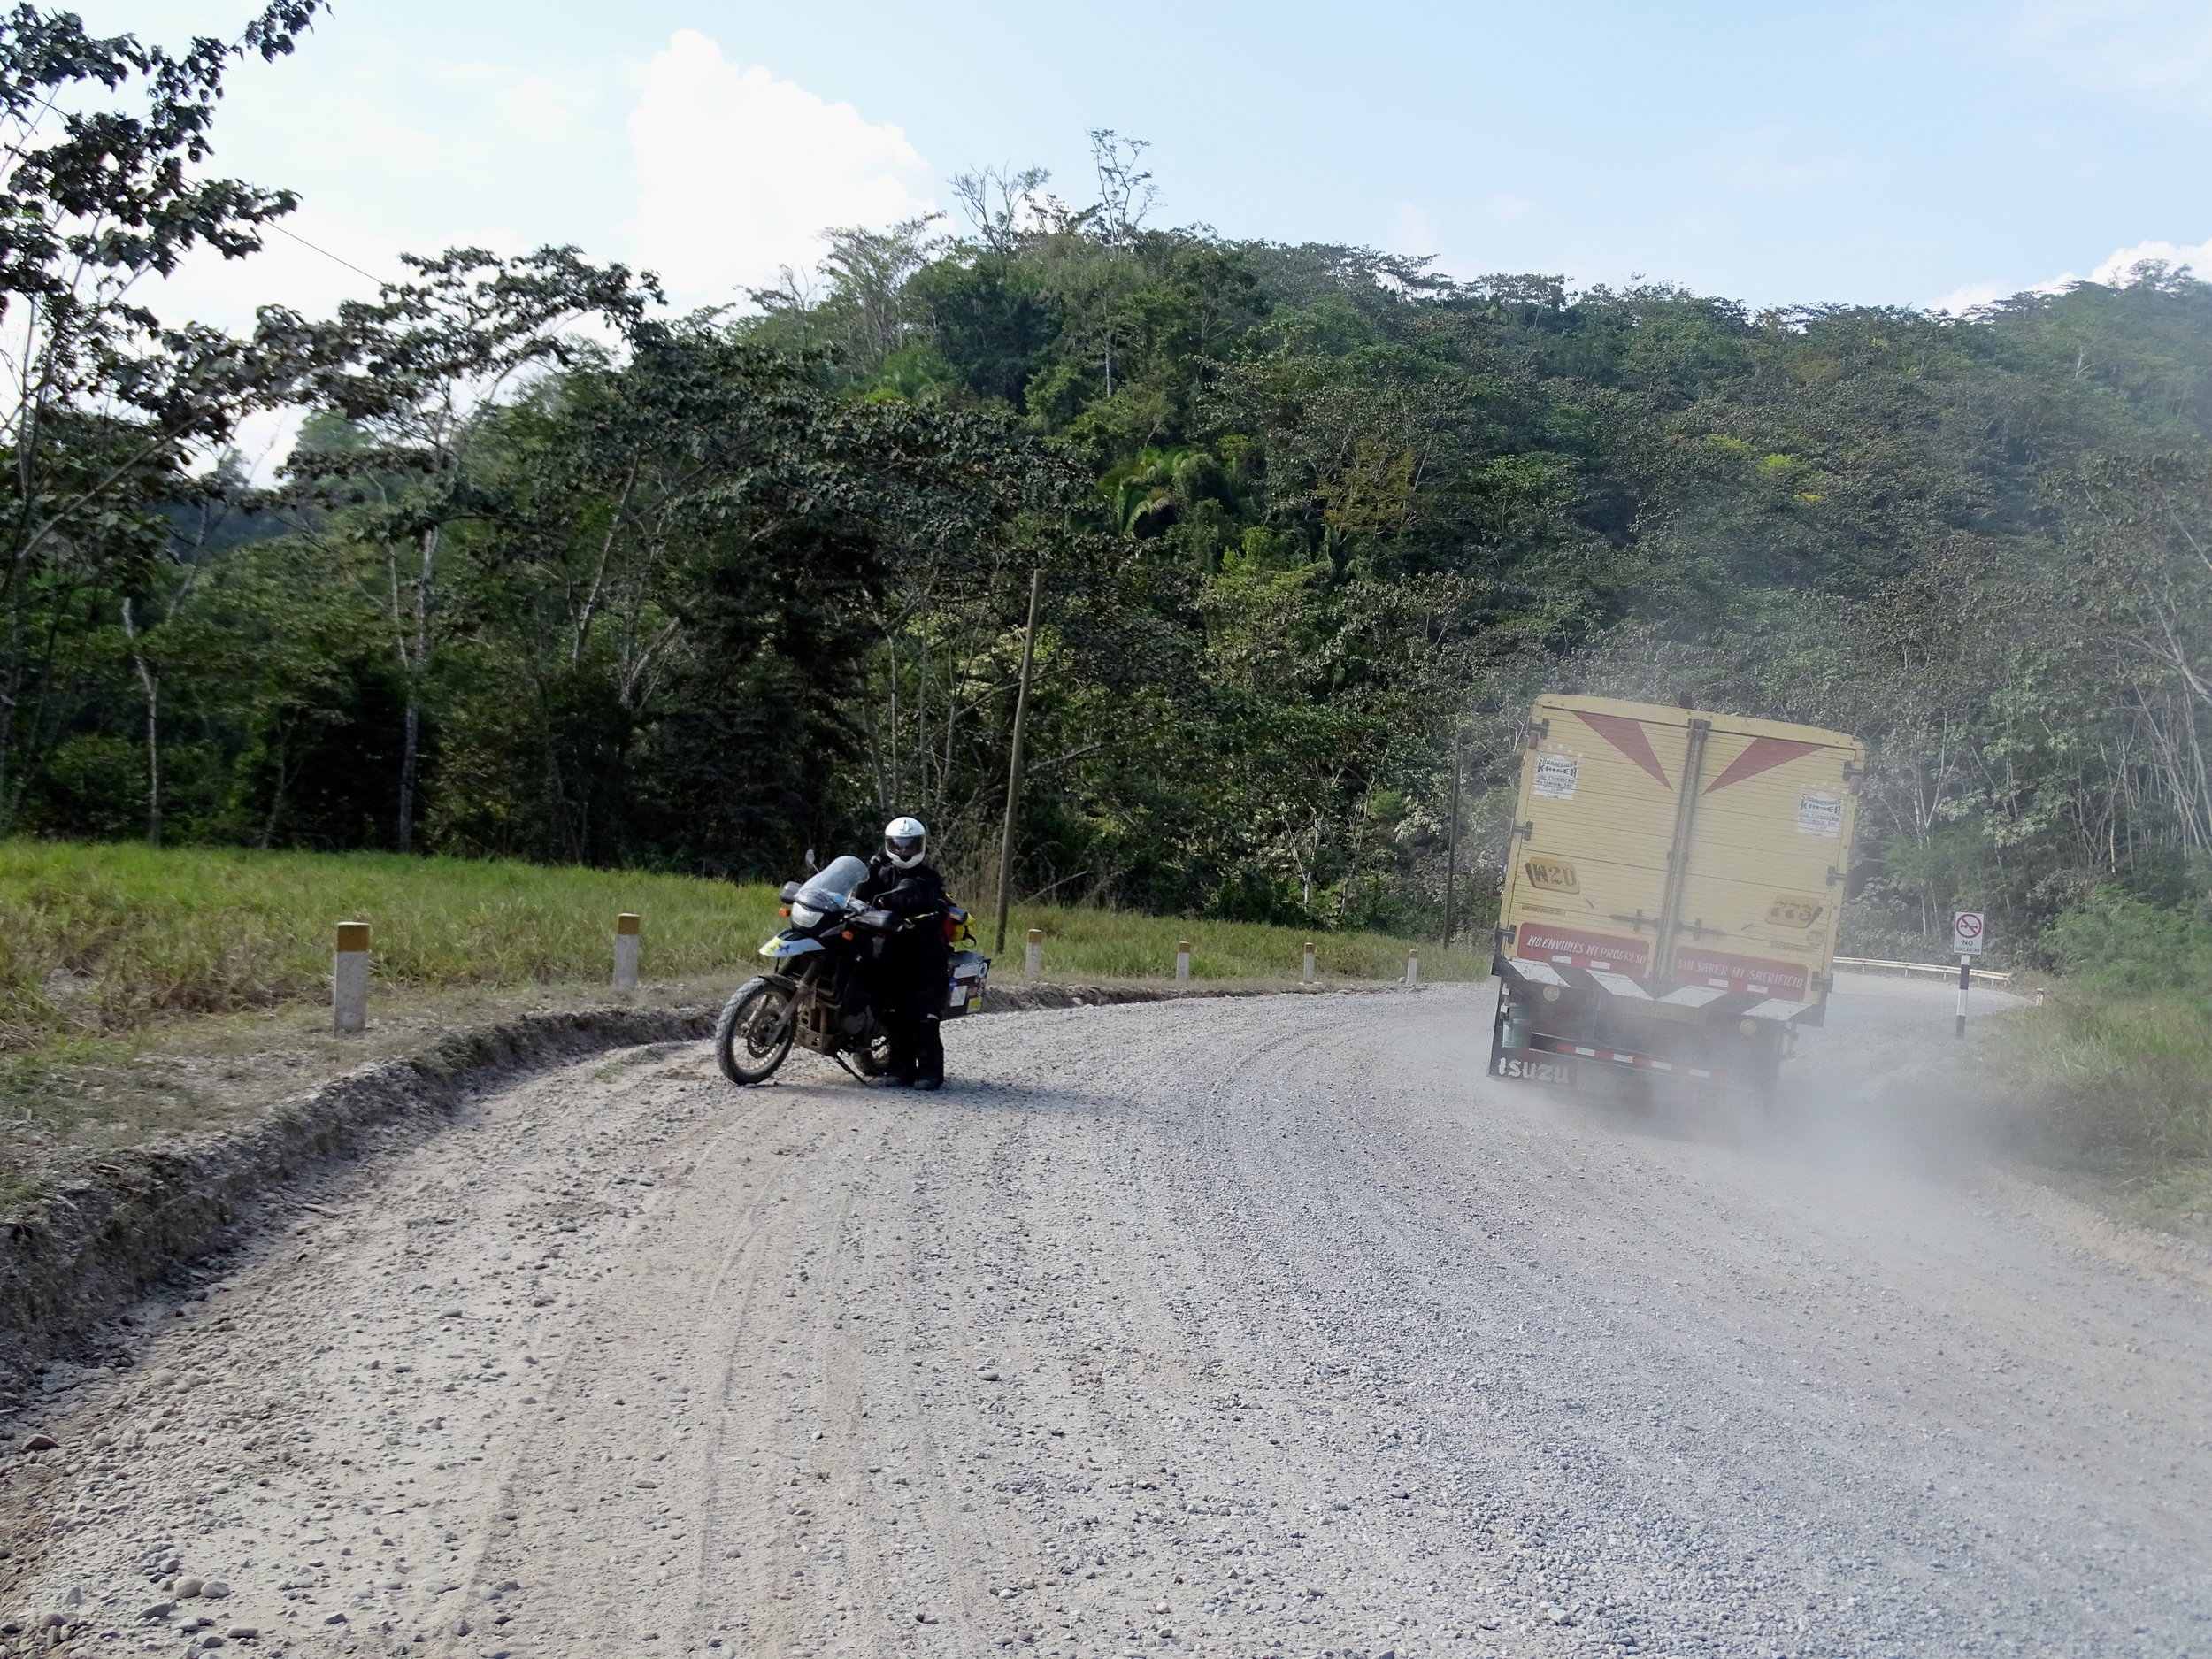 Riding on the good gravel road came with plenty of dust.